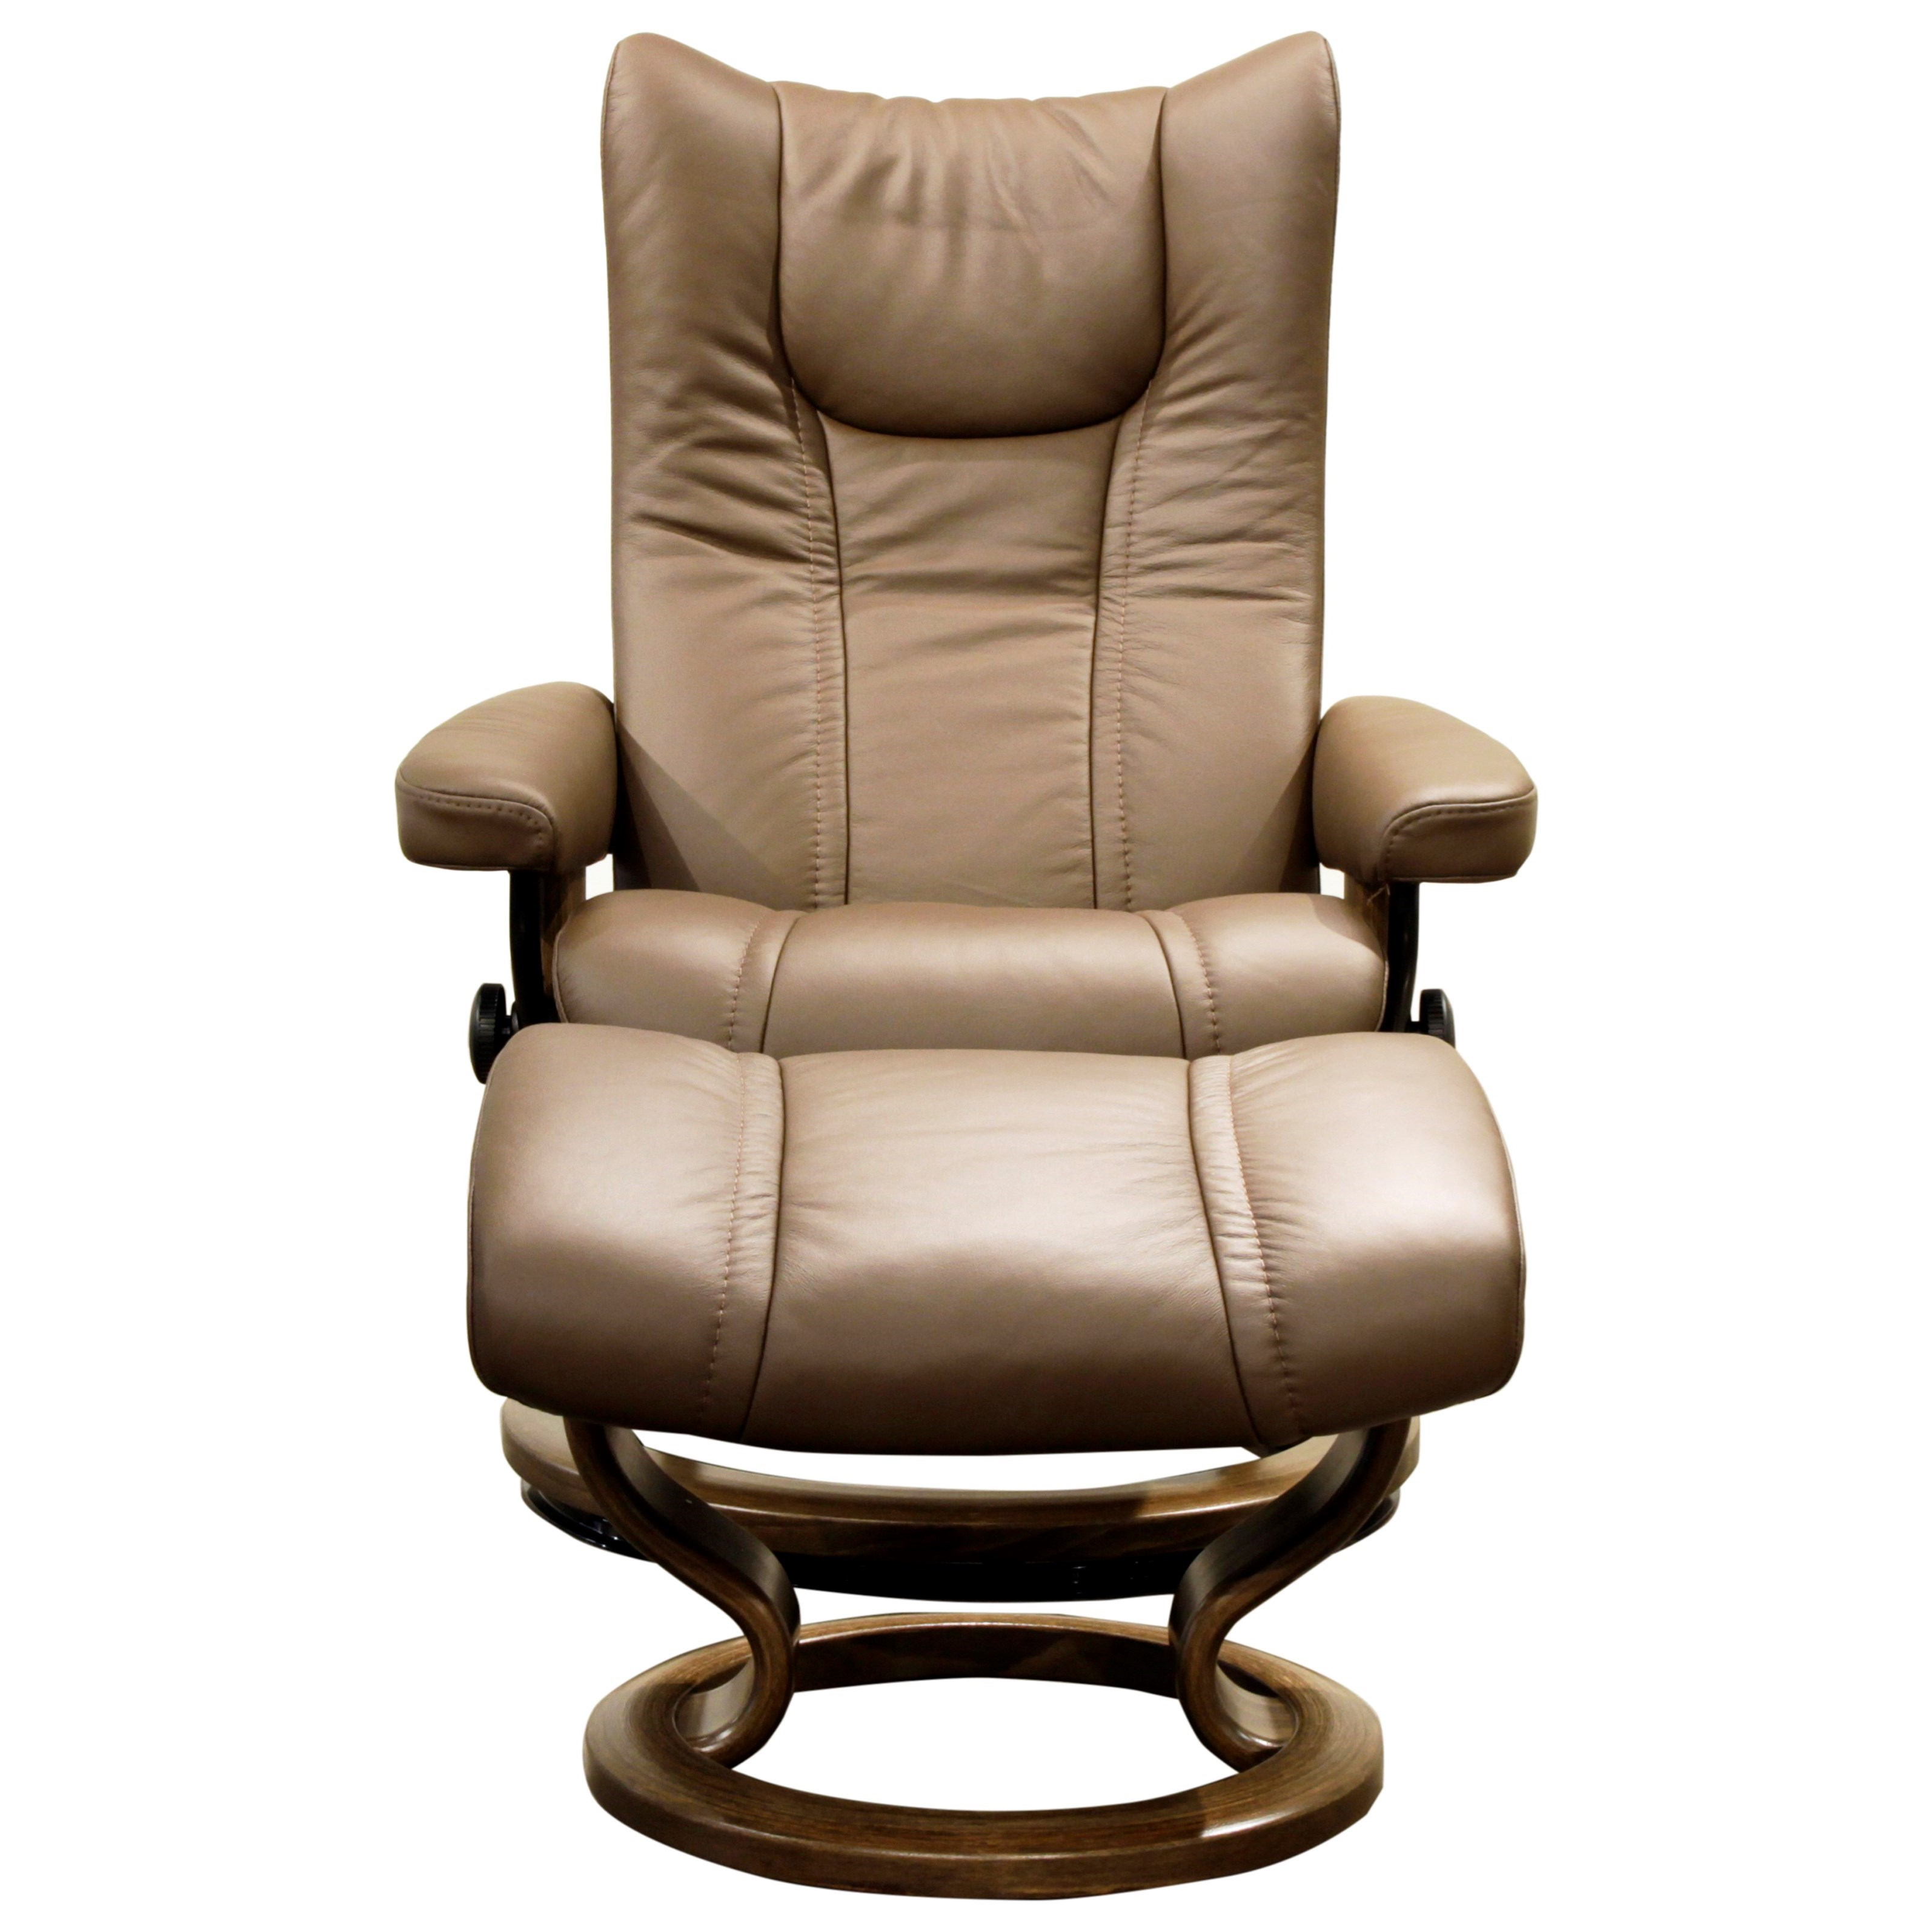 Small Chair With Ottoman: Stressless Wing 1054015 Small Reclining Chair And Ottoman